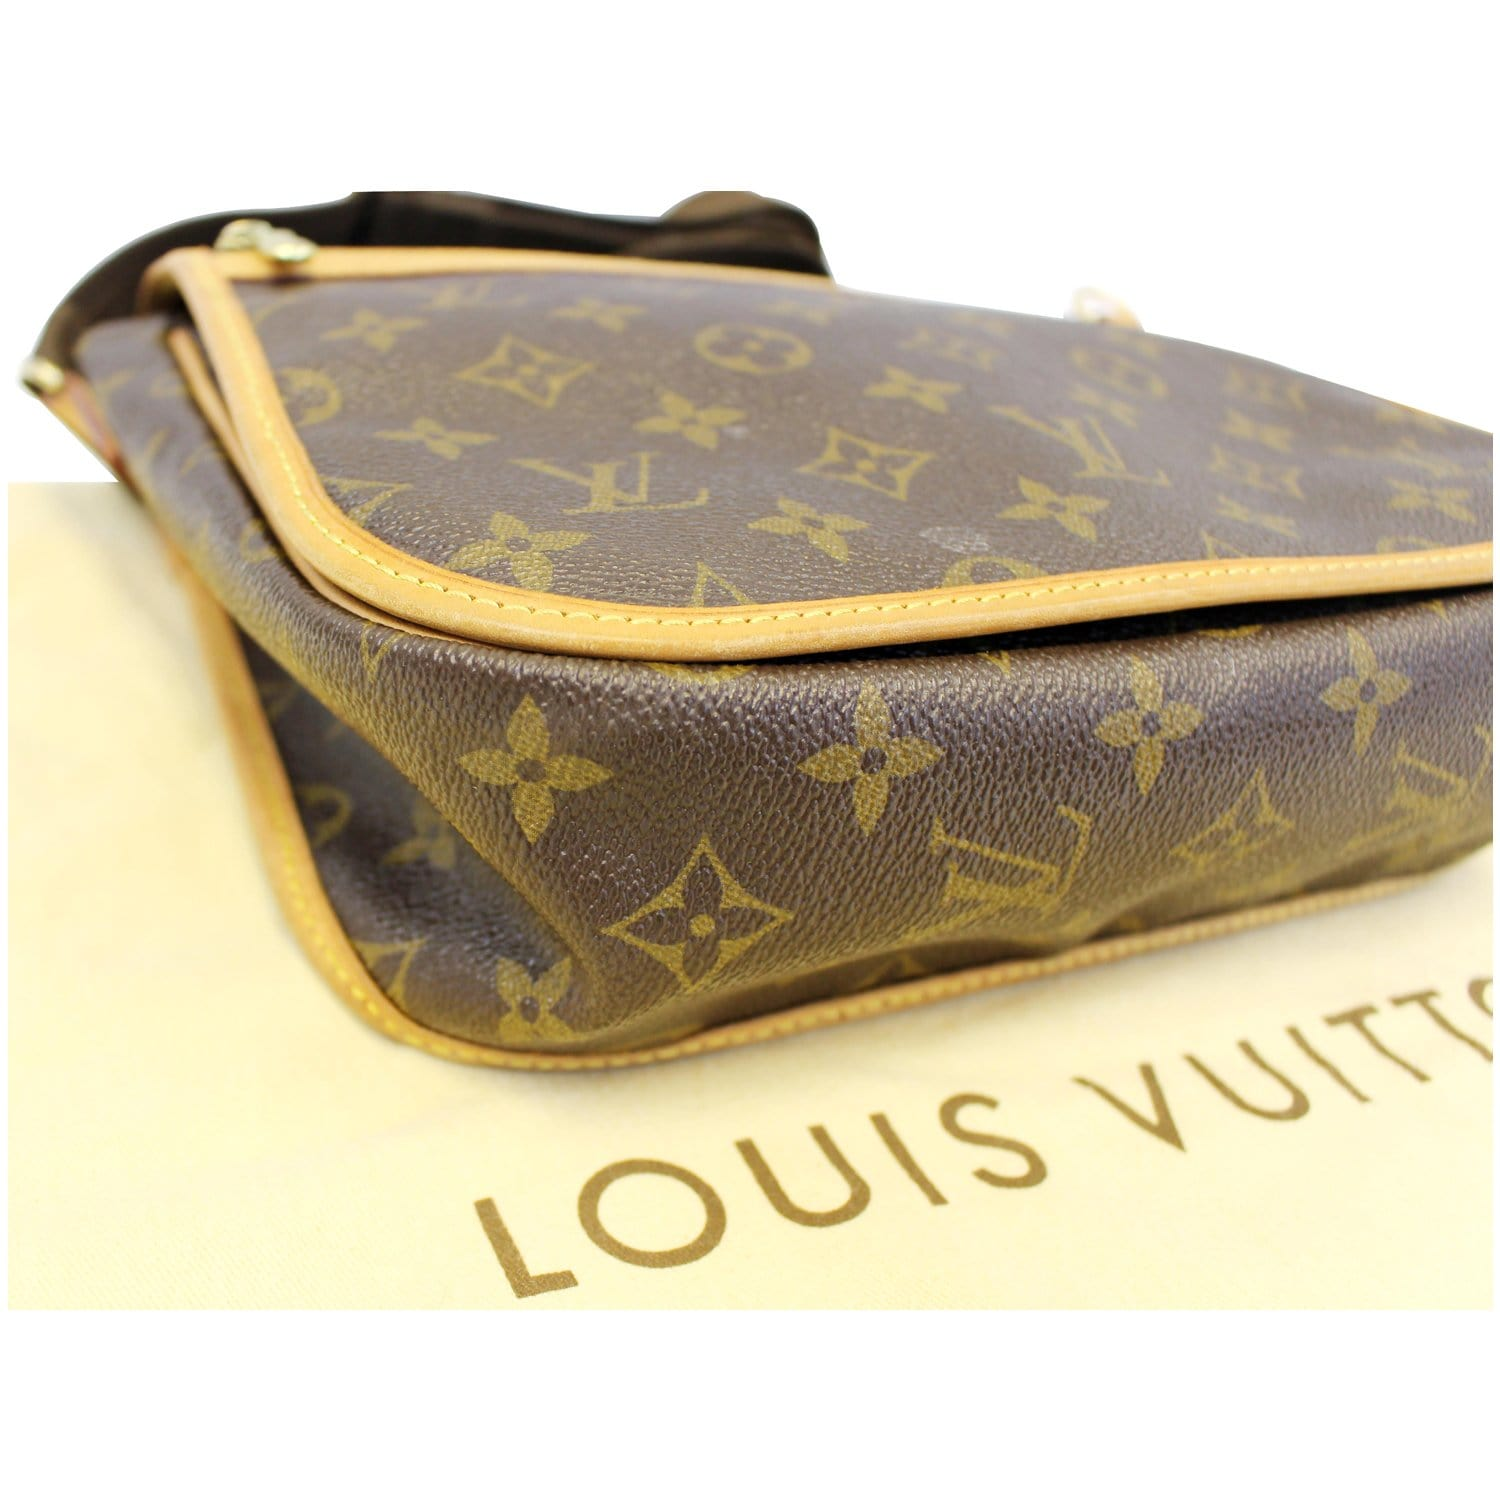 LOUIS VUITTON Bosphore PM Monogram Canvas Crossbody Bag-US  bd2a49226a0b8